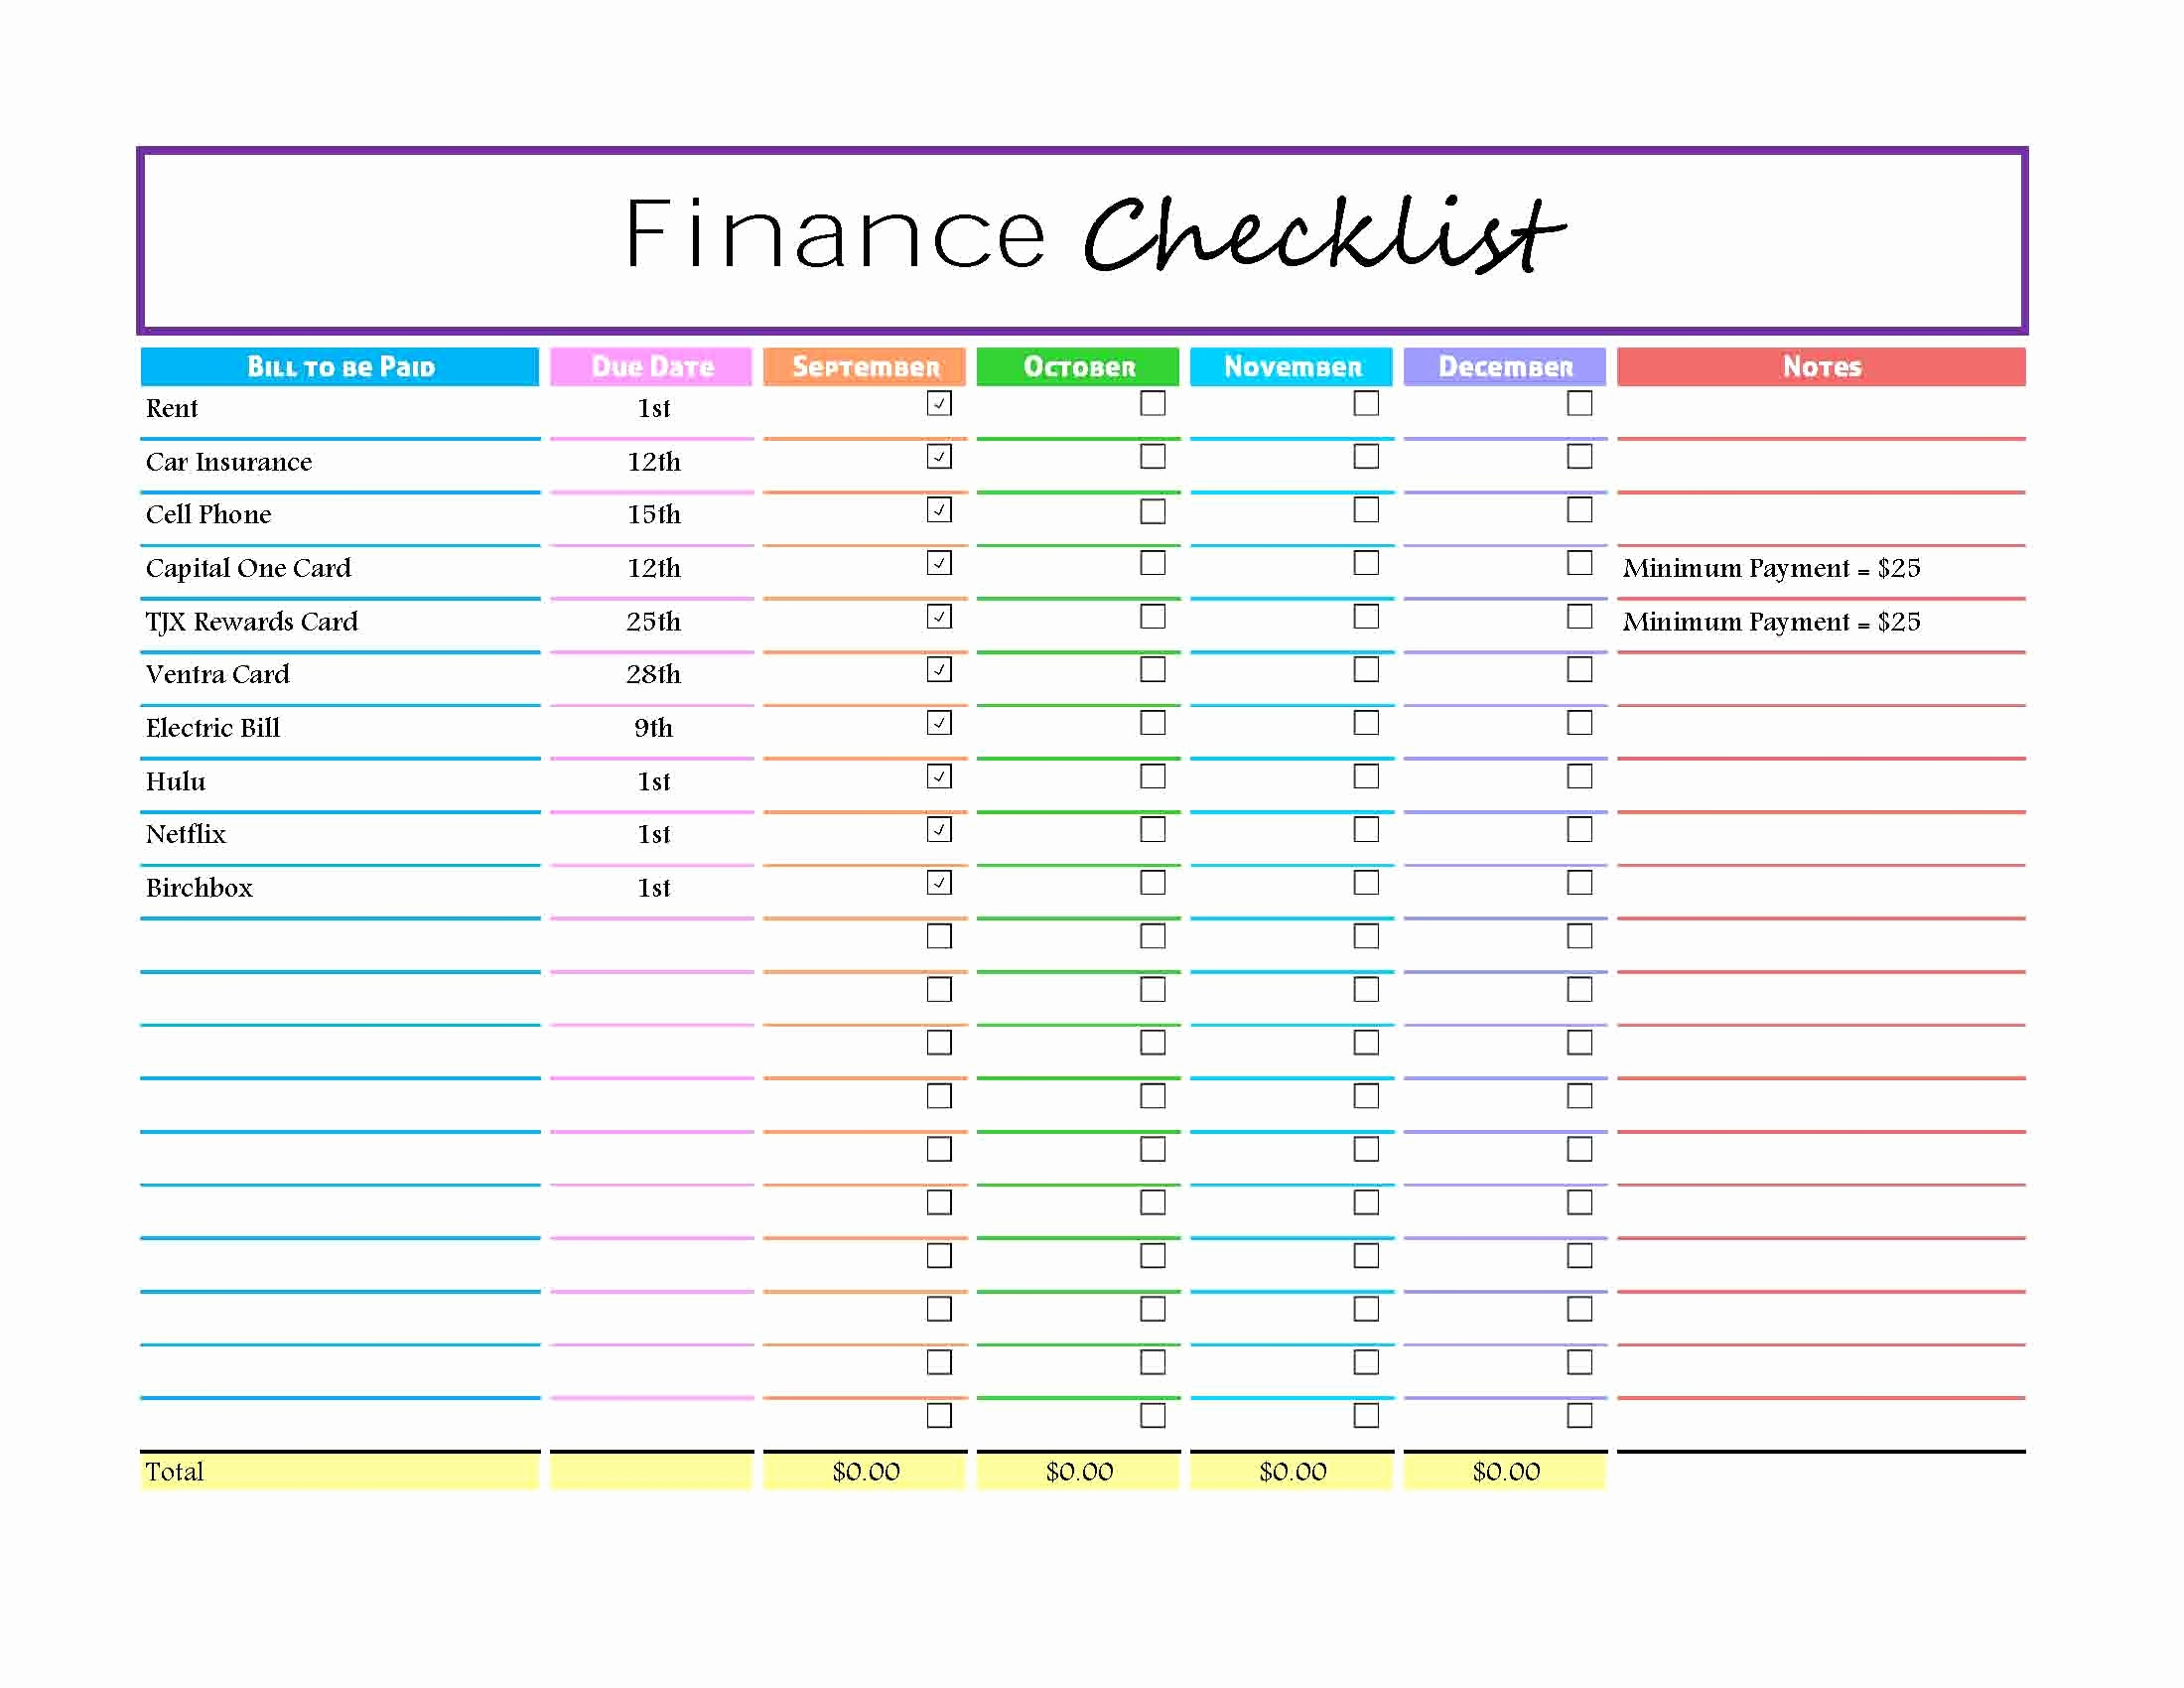 45 New Image Of Accounting Month End Close Checklist | Resume Layout Within Monthly Accounting Checklist Template Monthly Accounting Checklist Template Spreadsheet Templates for Busines Spreadsheet Templates for Busines monthly accounting checklist template